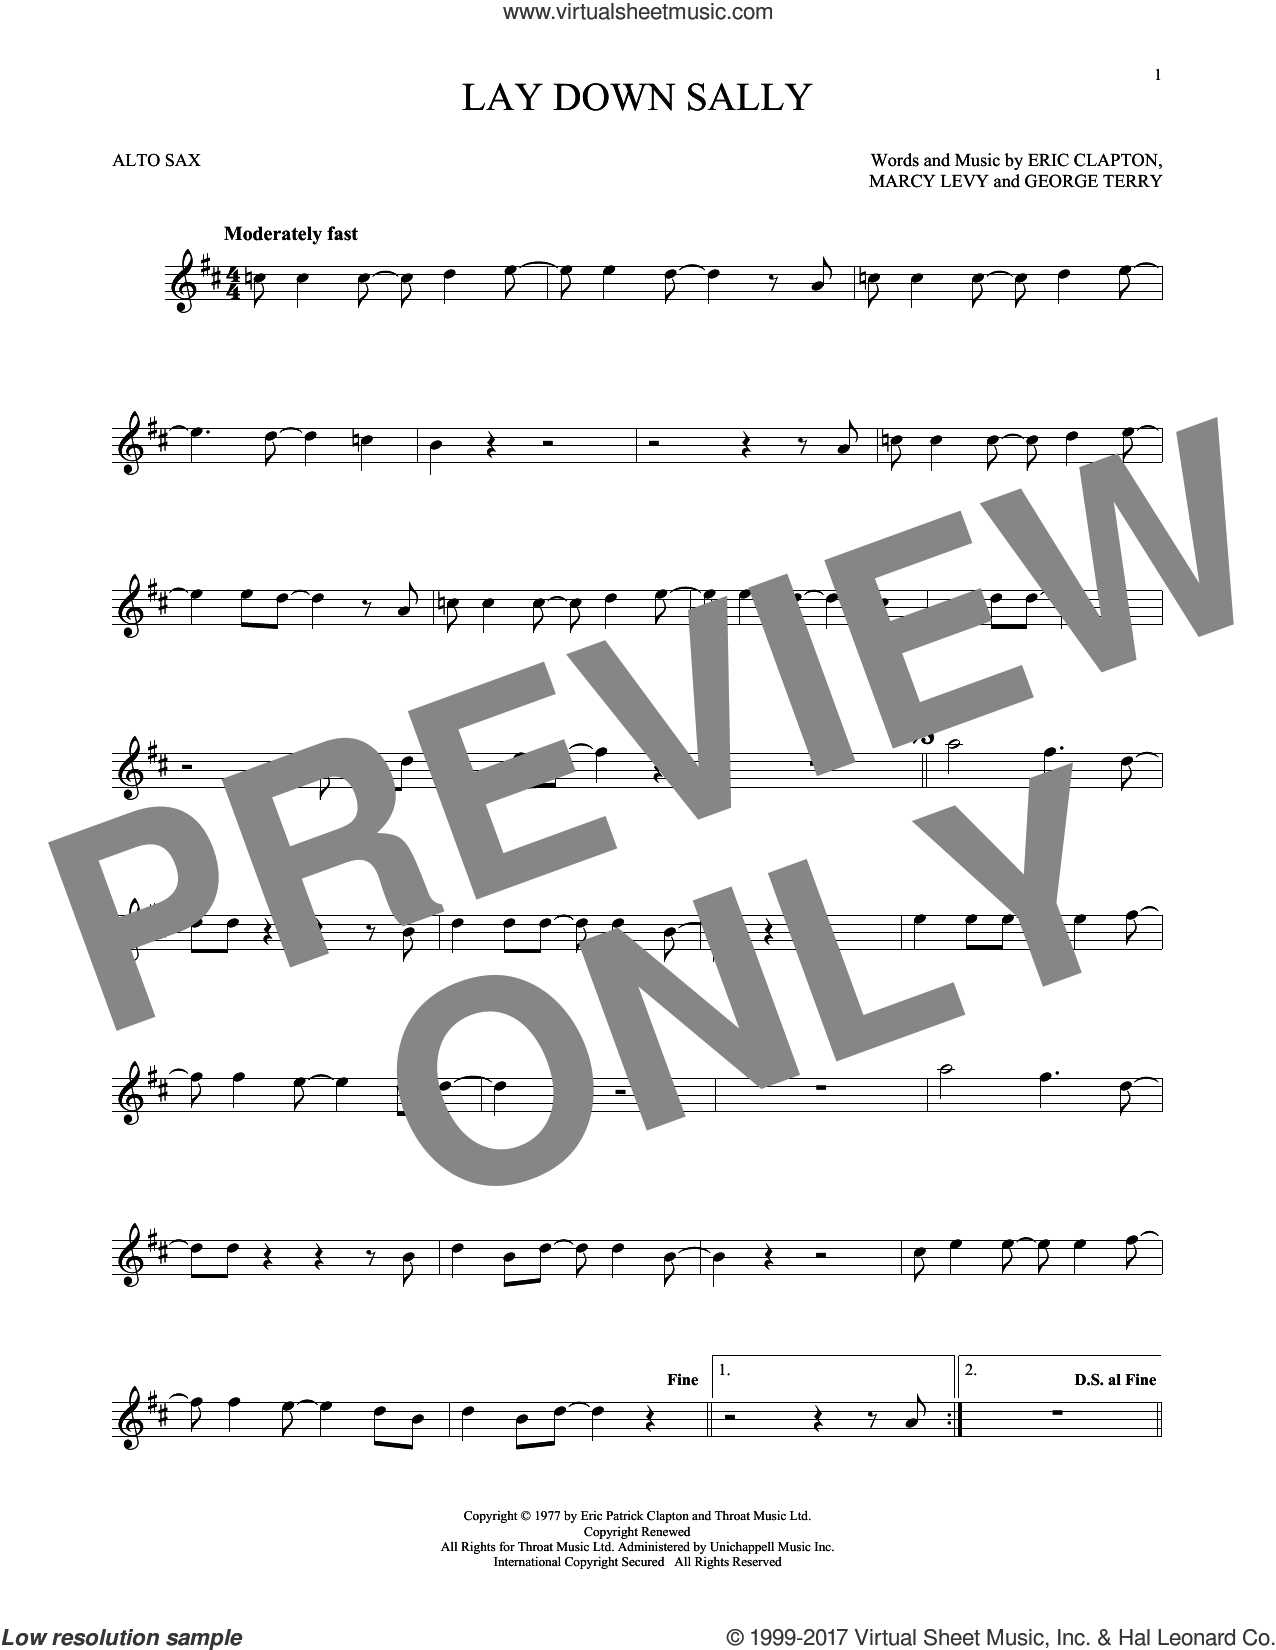 Lay Down Sally sheet music for alto saxophone solo ( Sax) by Eric Clapton, George Terry and Marcy Levy, intermediate alto saxophone ( Sax). Score Image Preview.